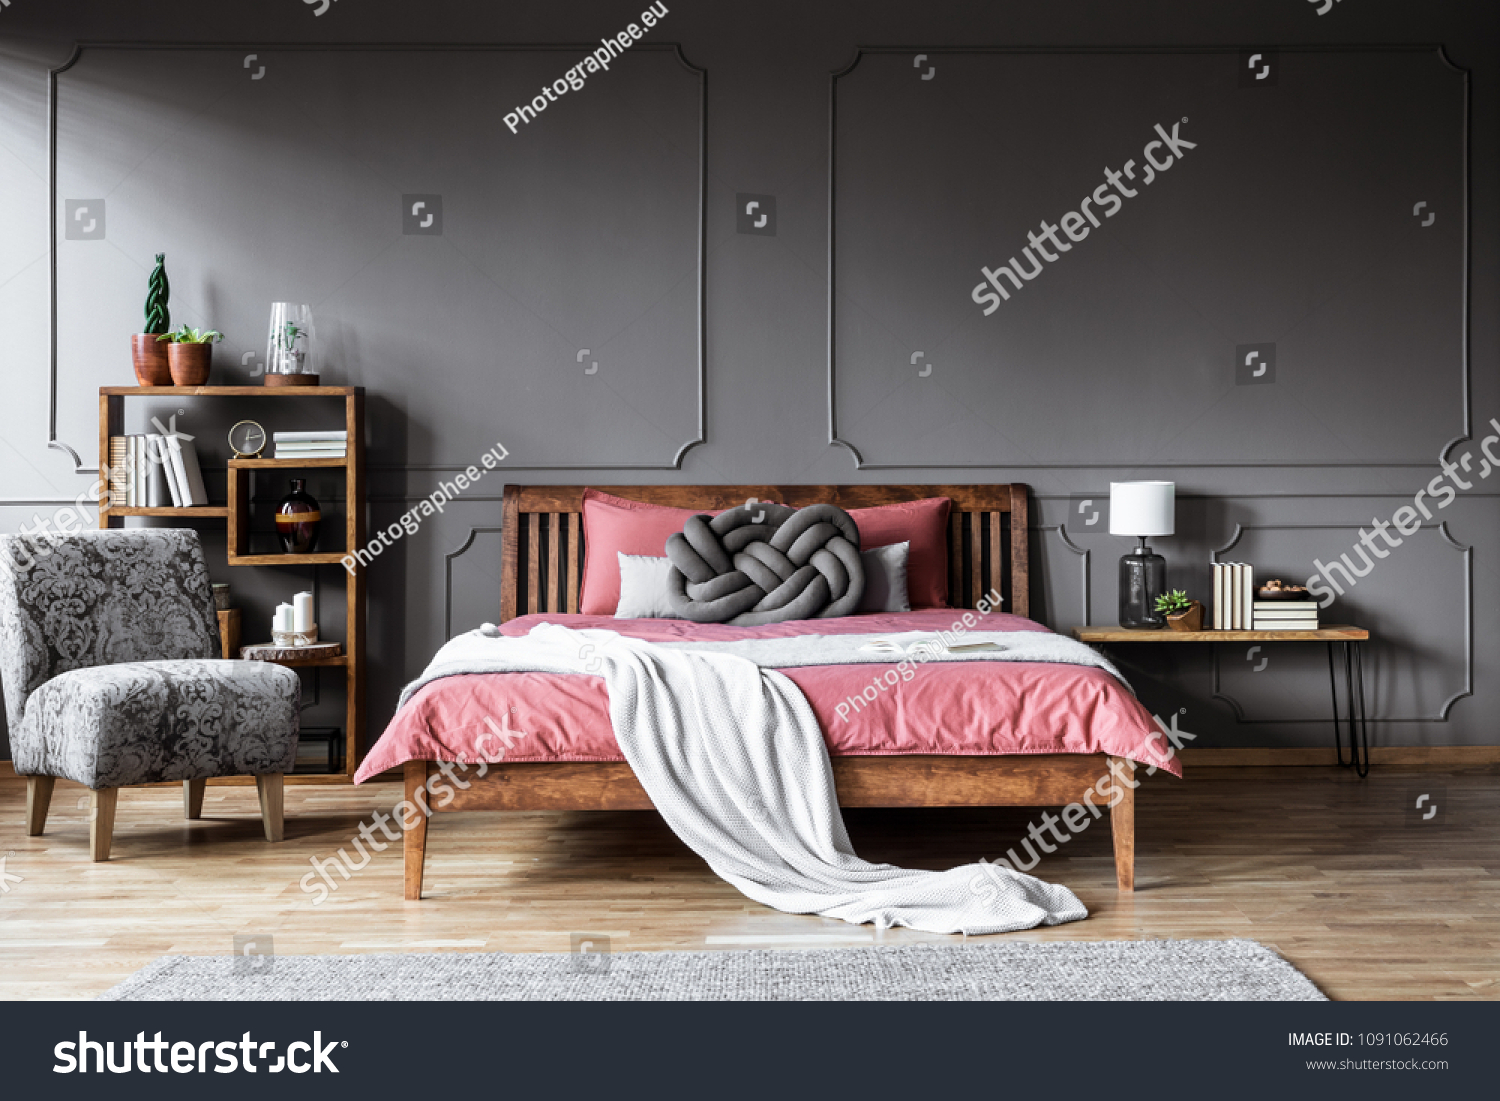 Patterned Armchair Next Wooden Bed Pink Stock Photo (Edit ...